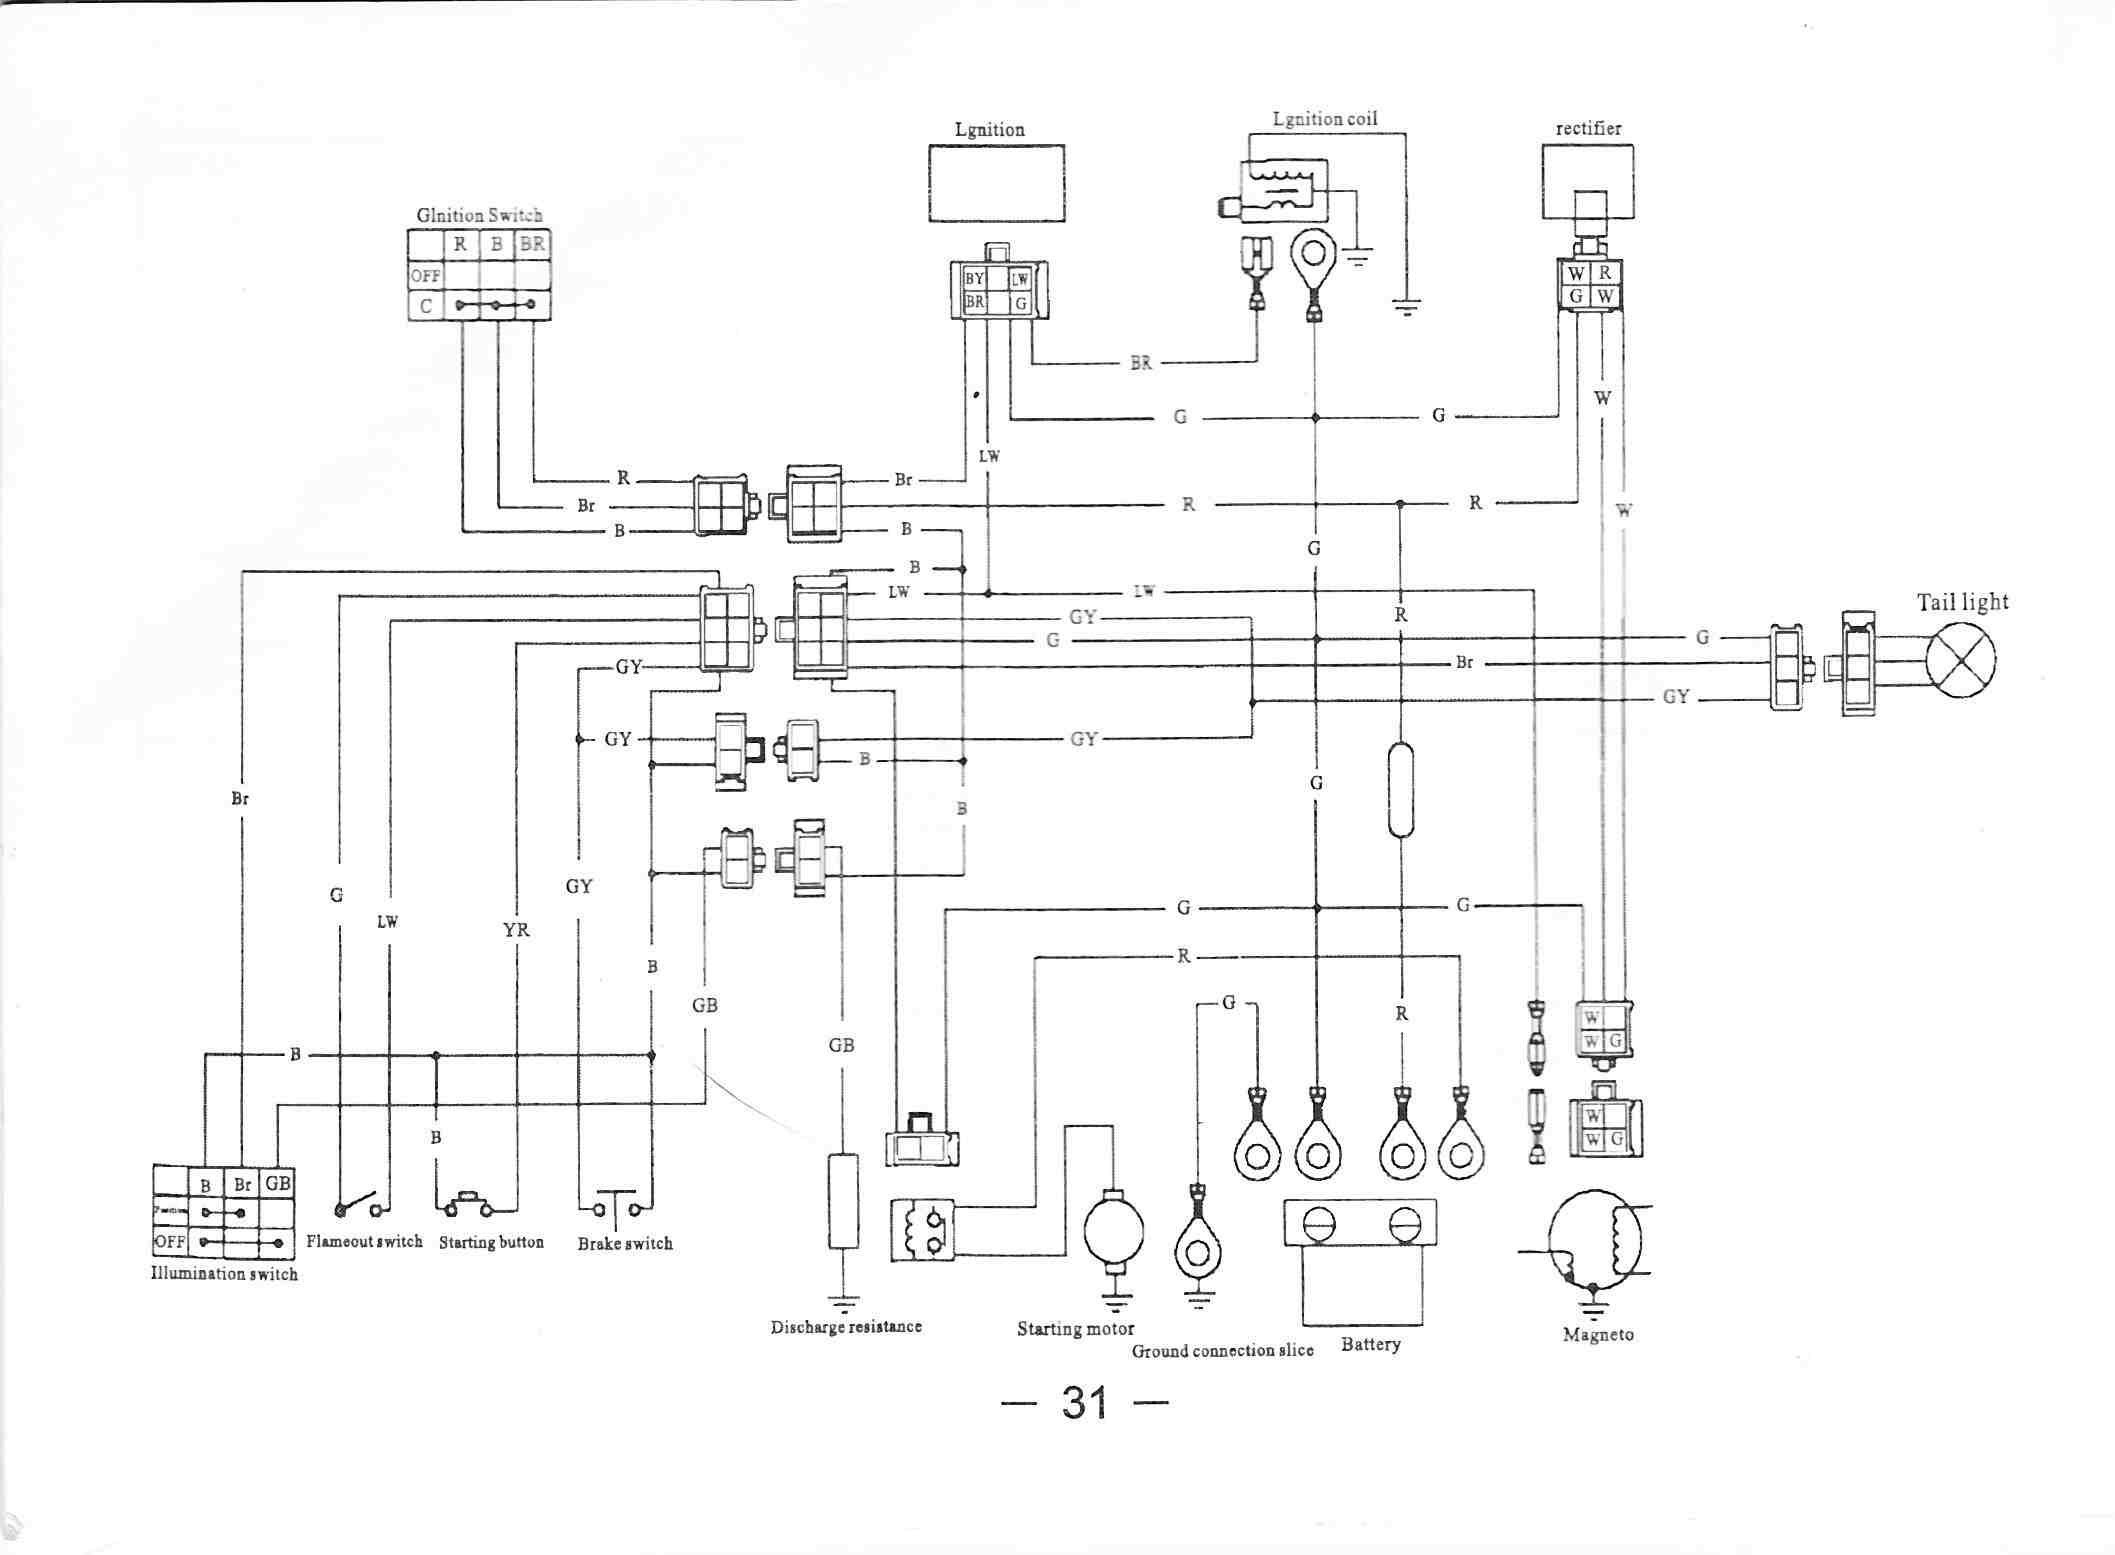 dinli 50 wiring diagram free image about wiring diagram wire rh linxglobal co 125Cc Chinese ATV Wiring Diagram 125Cc Chinese ATV Wiring Diagram